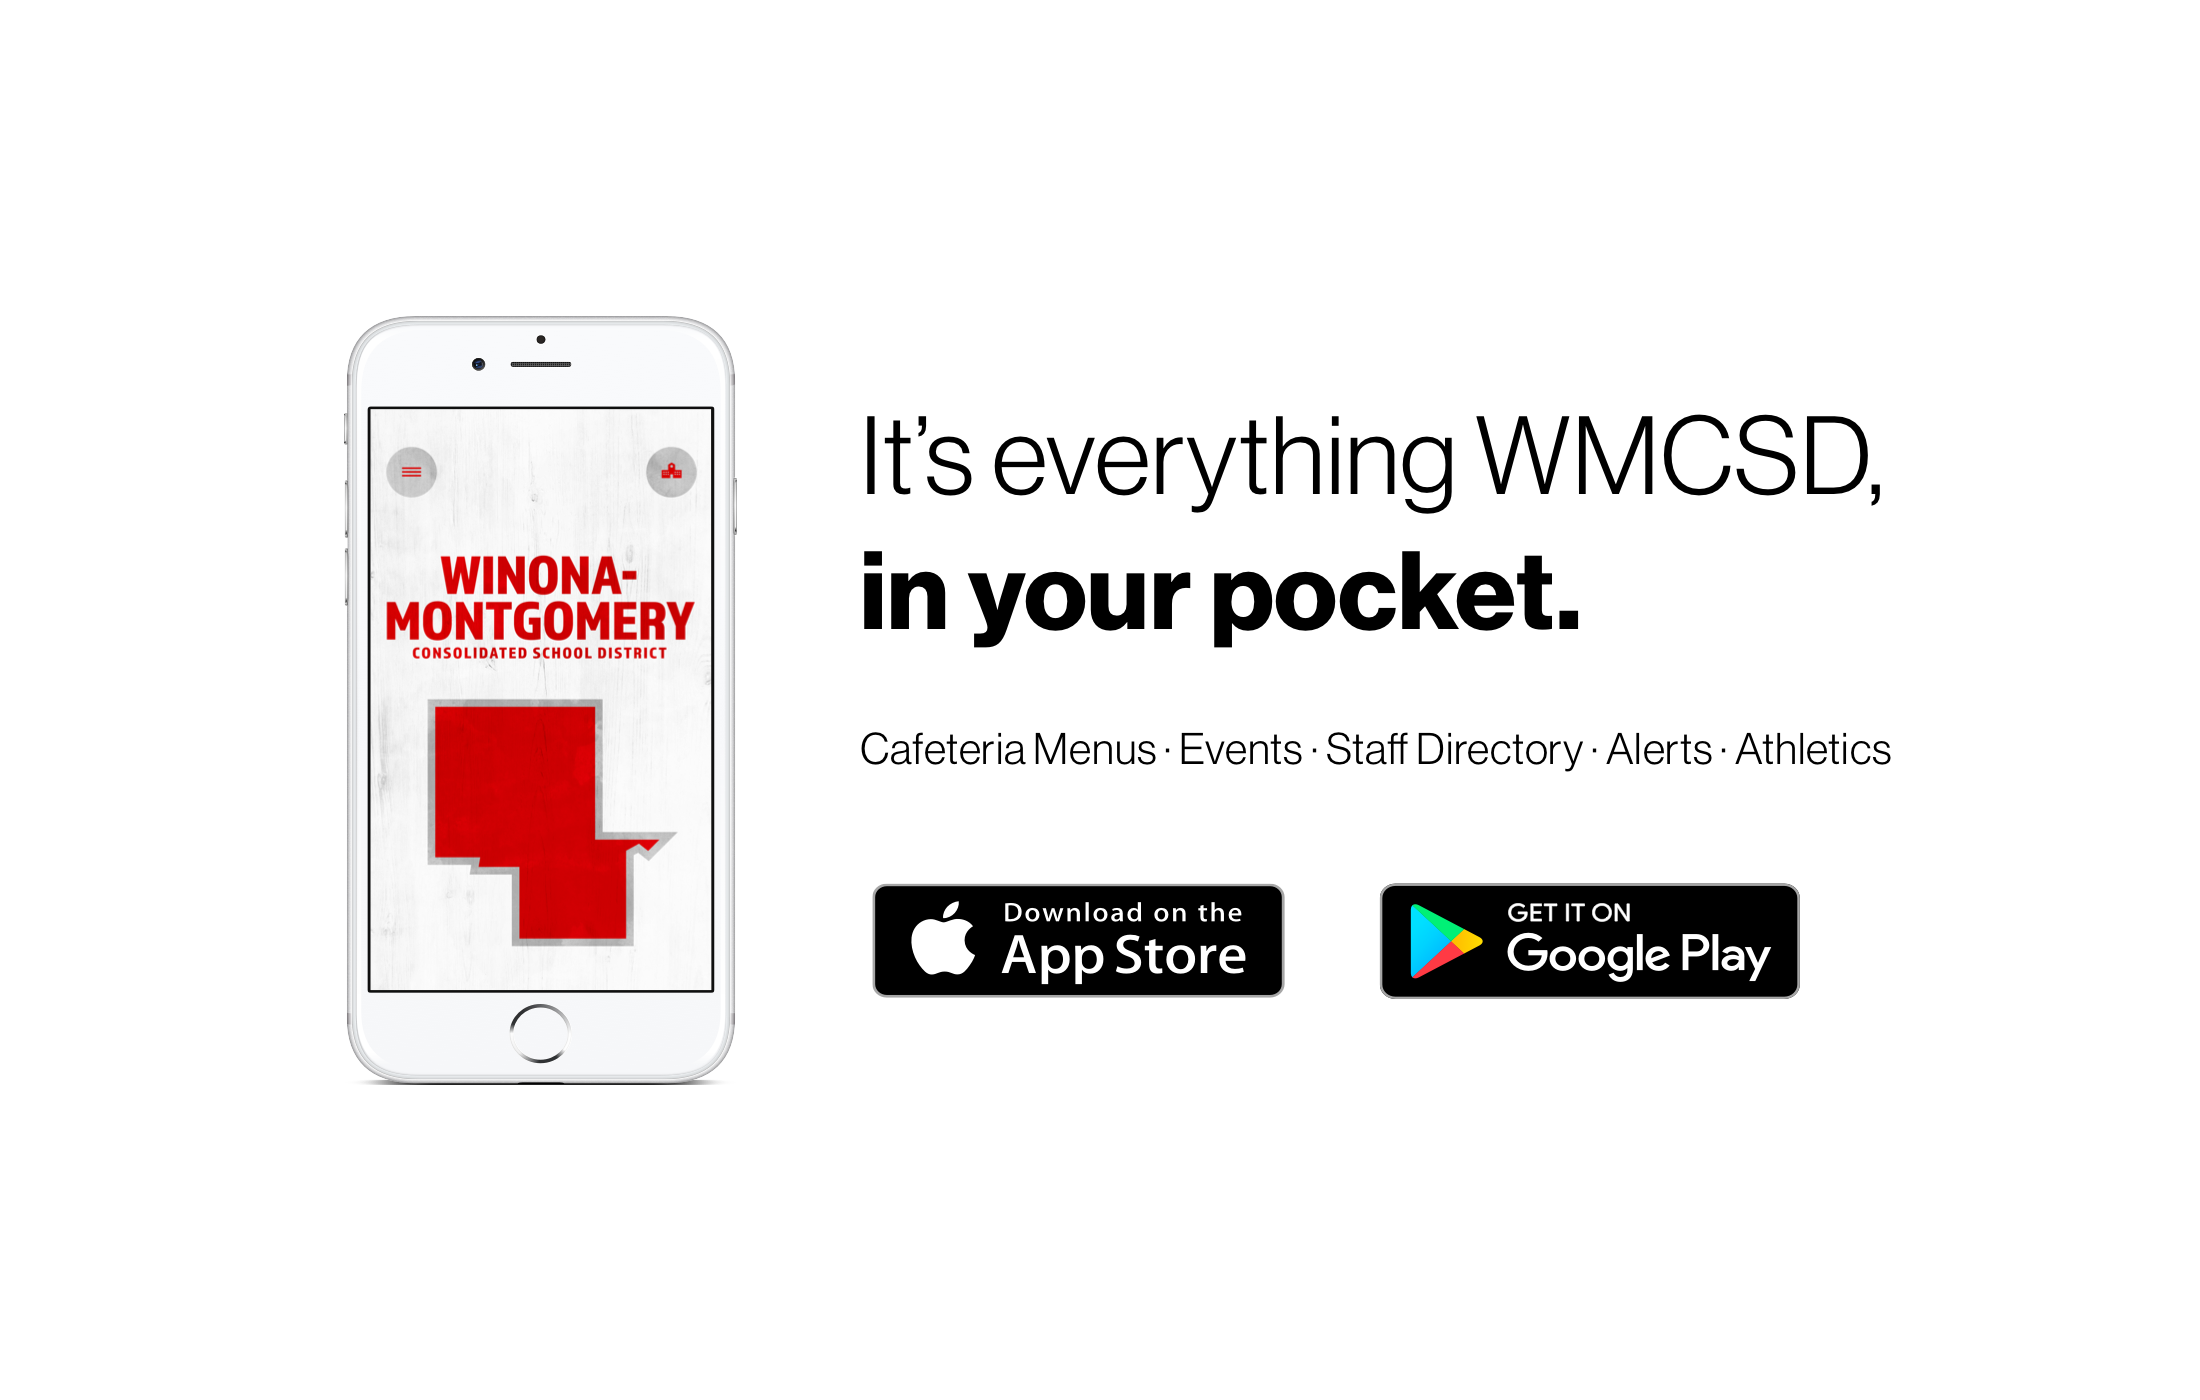 It's everything WMCS, in your pocket.